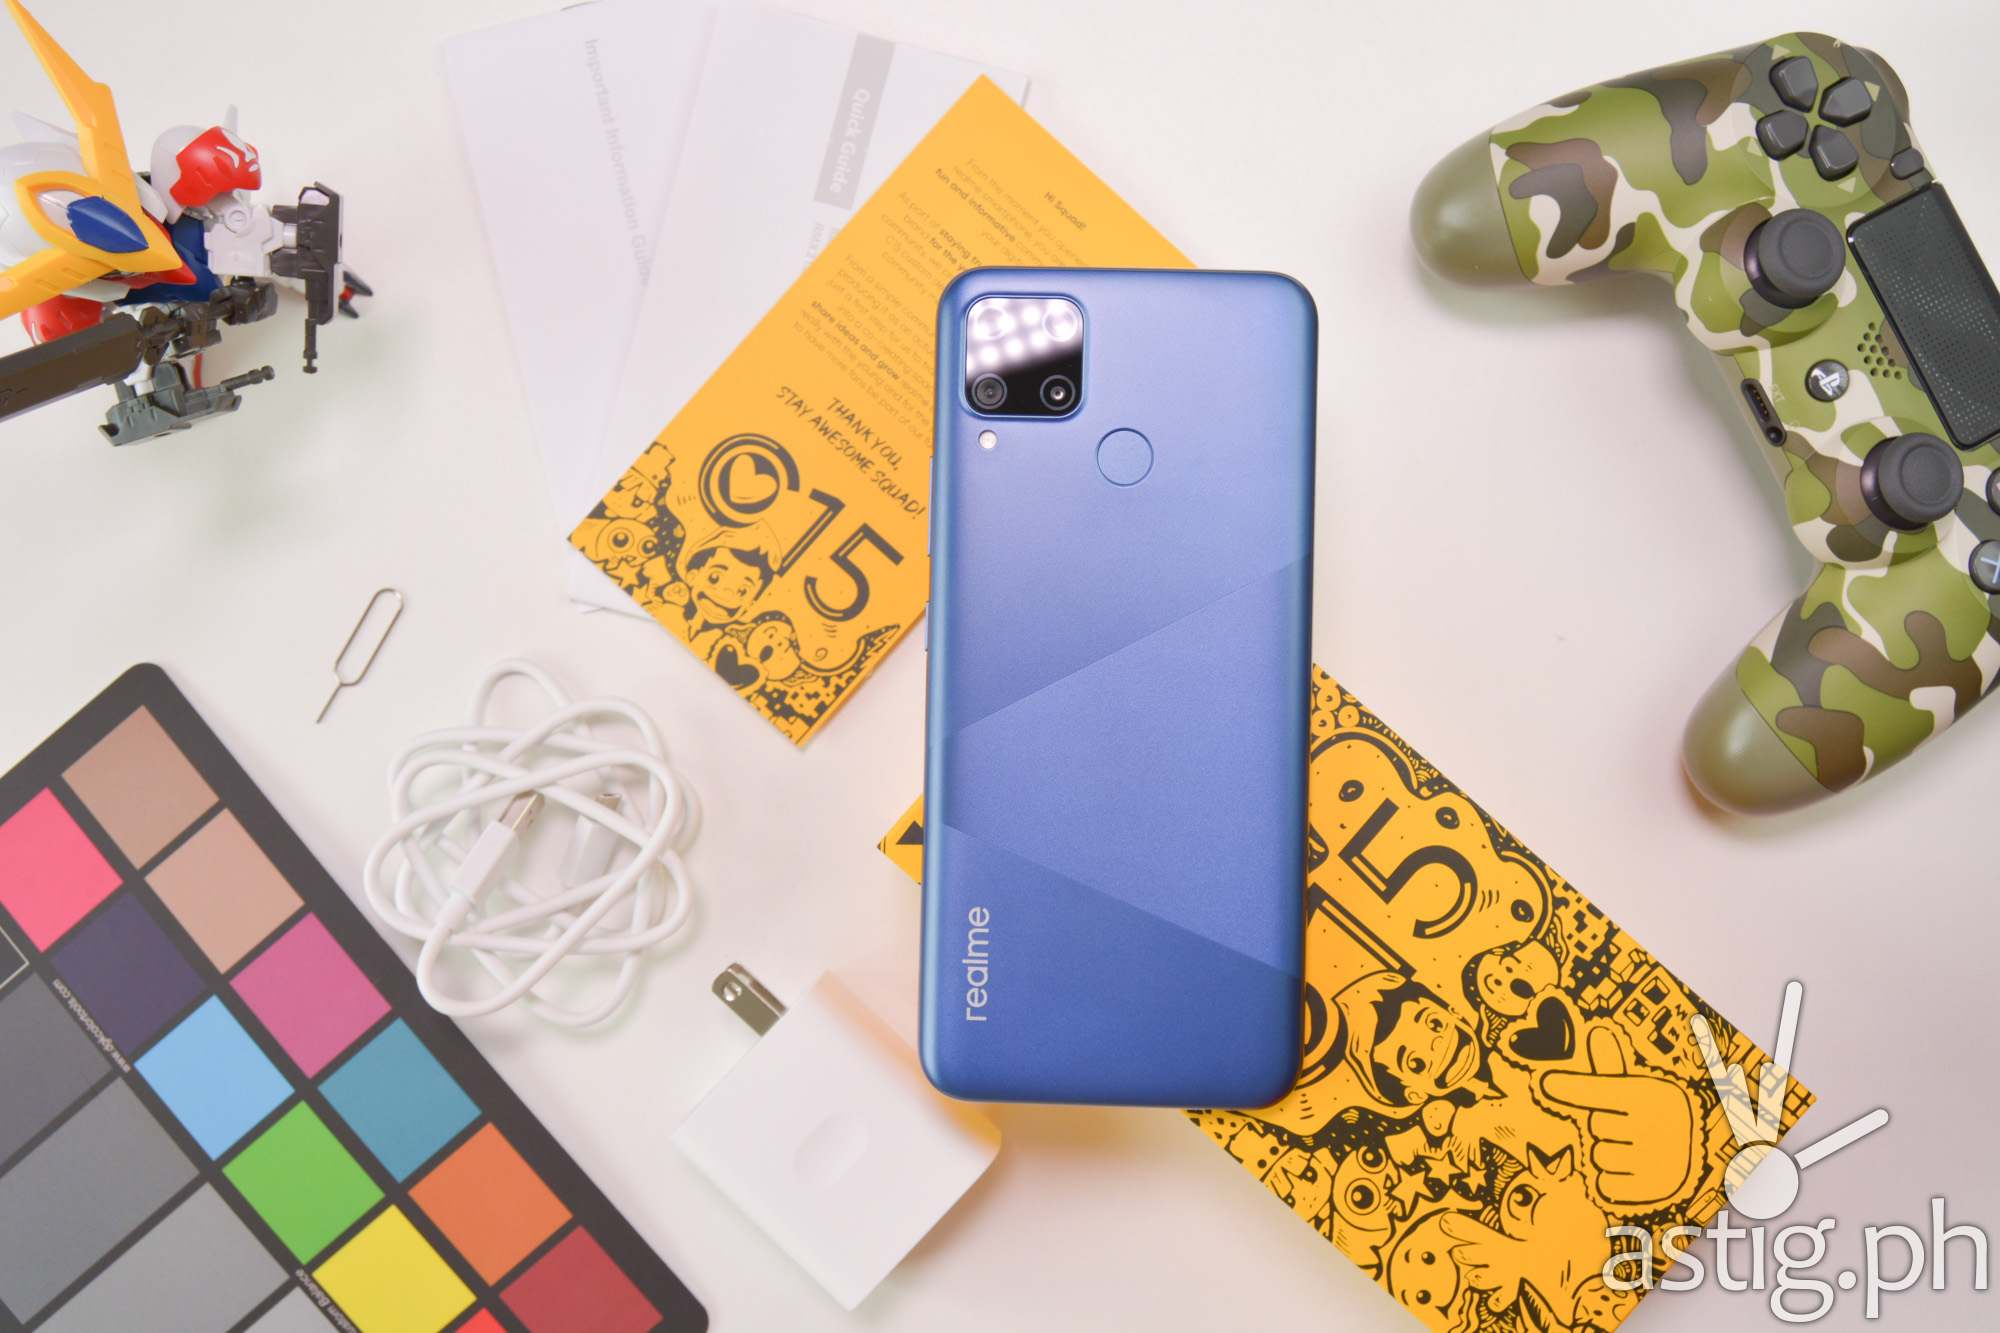 Unboxed back - Realme C15 (Philippines)